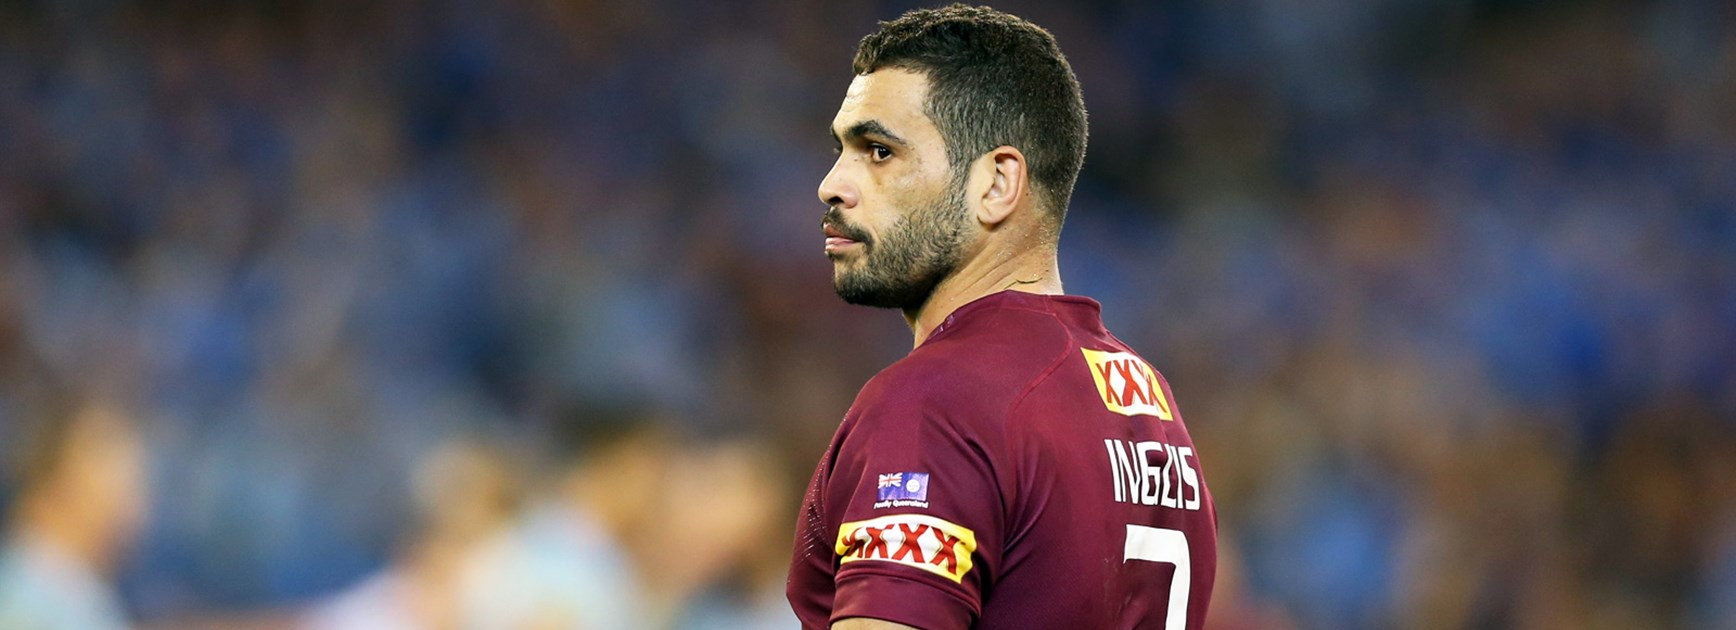 Greg Inglis is confident in his ability to lead the Maroons from fullback in Origin III.